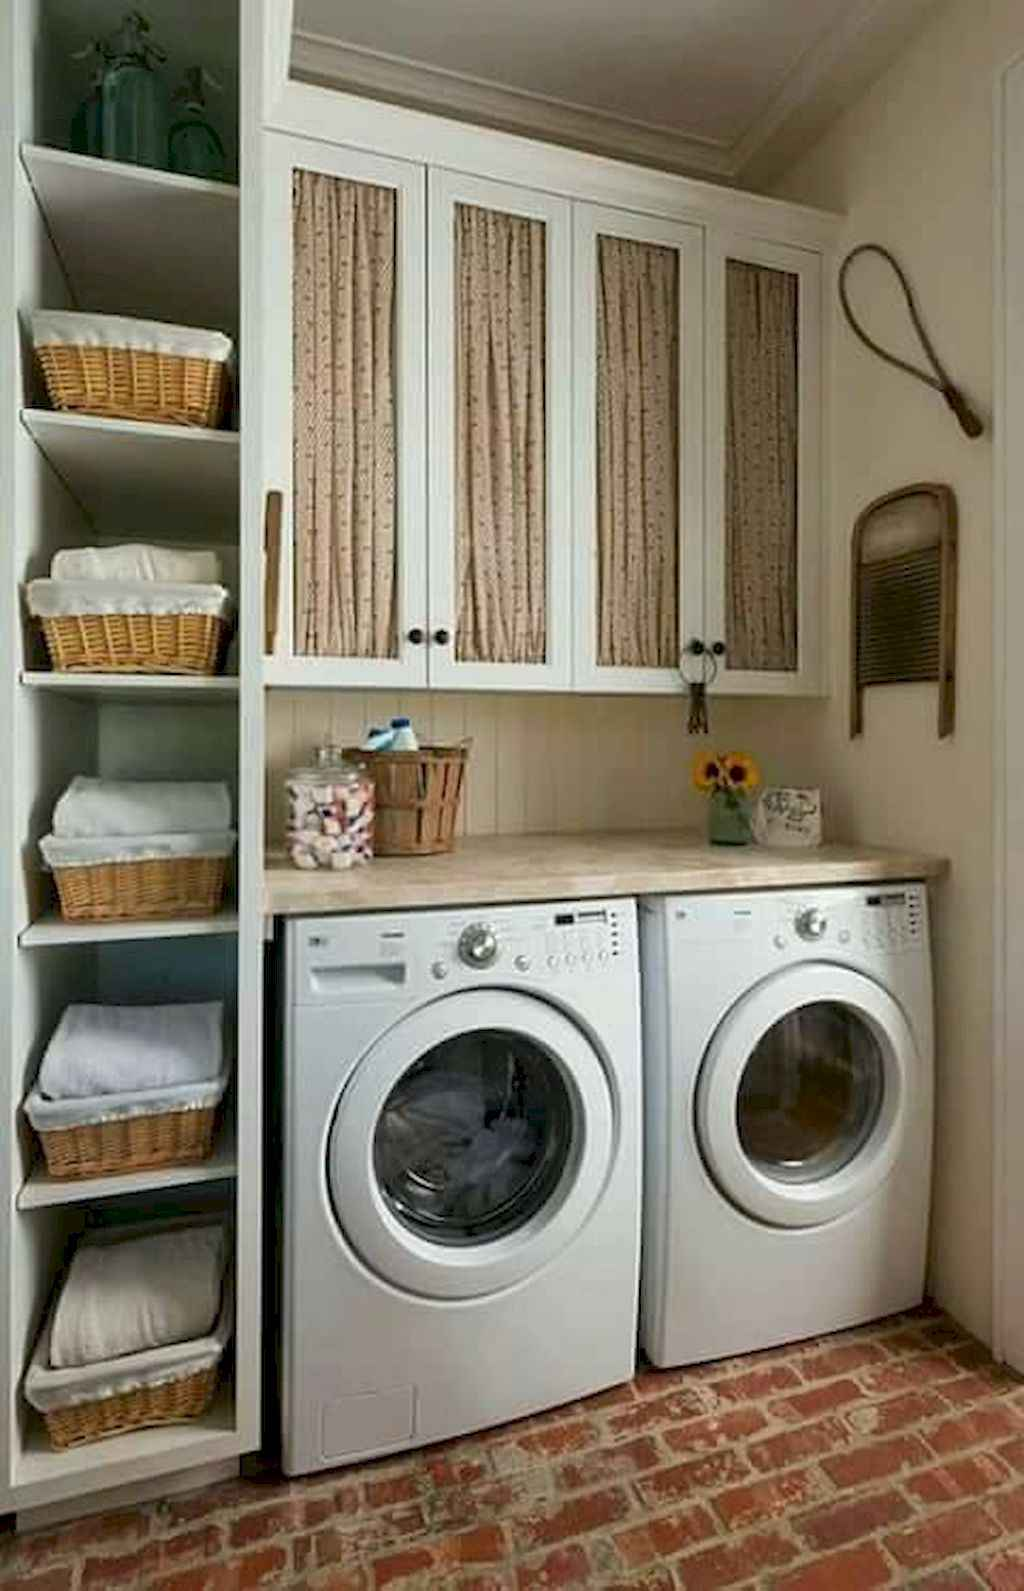 45 Rustic Farmhouse Laundry Room Design Ideas and Makeover (21)